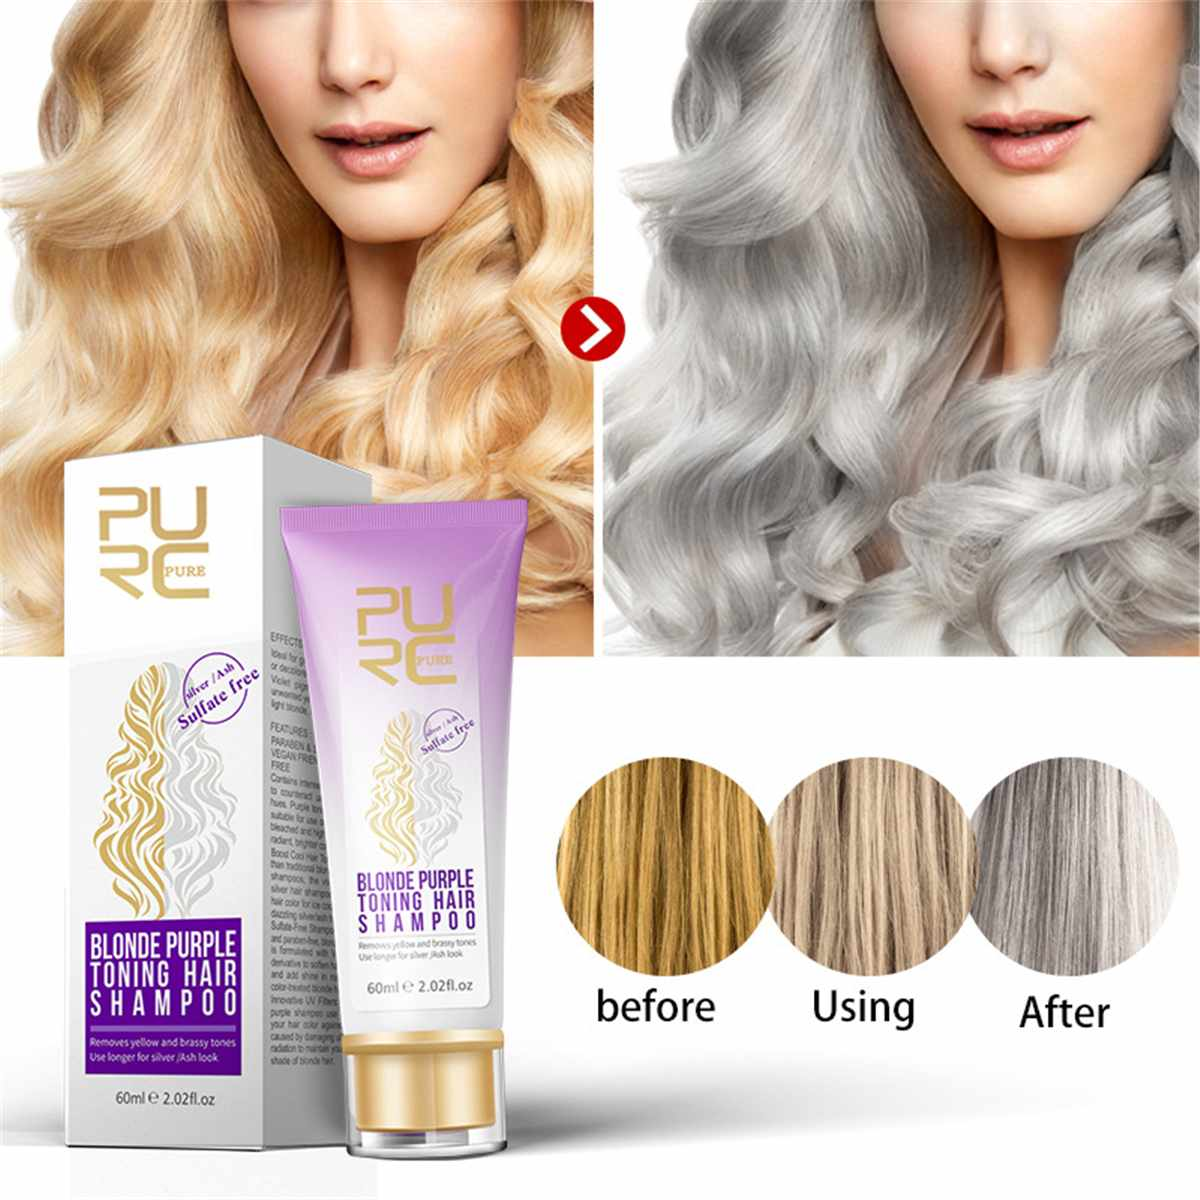 Blonde Purple Hair Shampoo Removes Yellow And Brassy Tones for Silver Ash Look Purple Hair Shampoo image